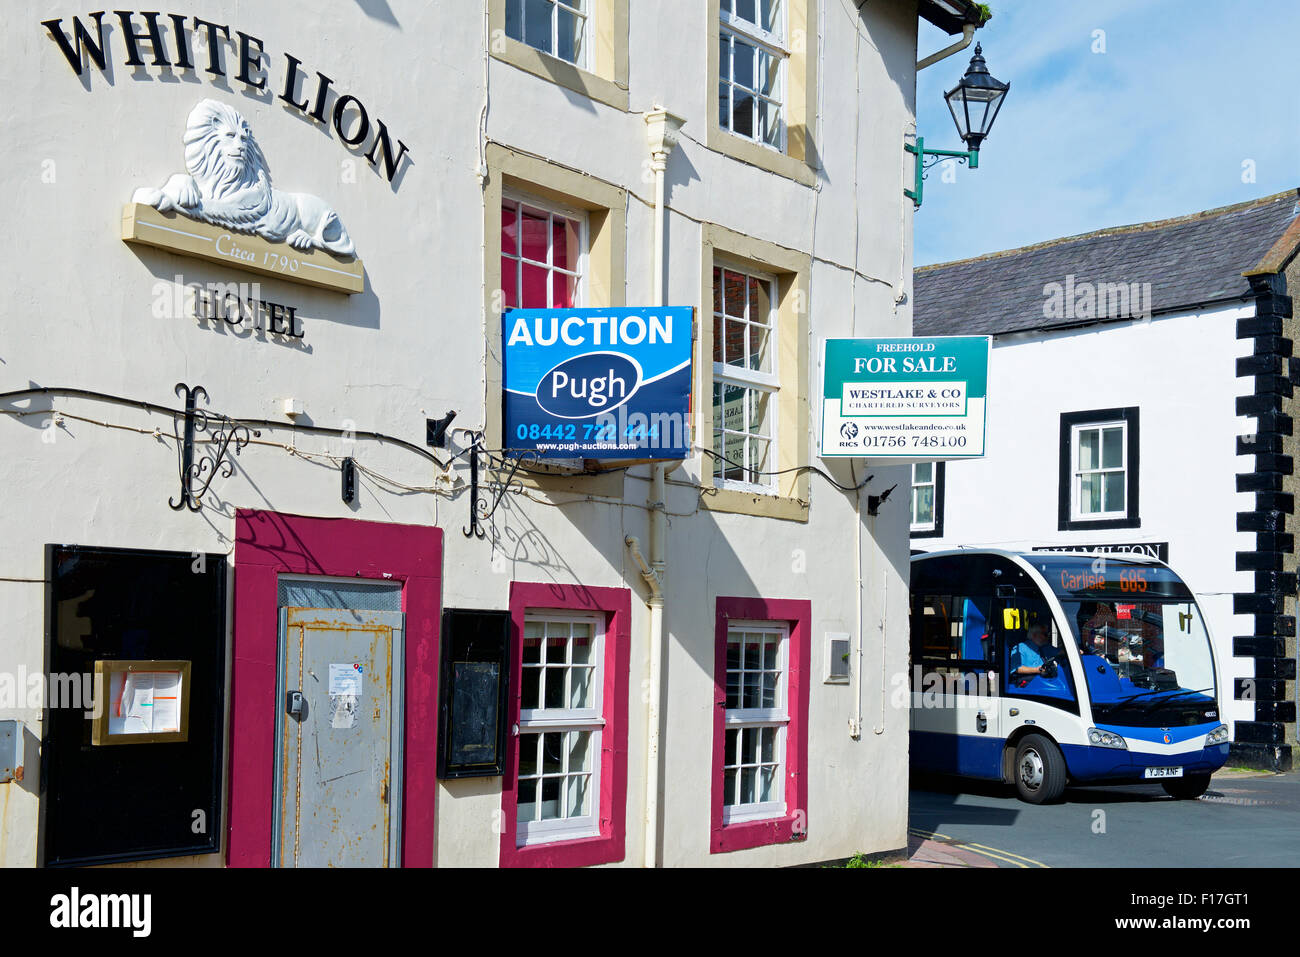 The White Lion pub, shut and shuttered, with For Sale sign, in Brampton, Cumbria, England UK - Stock Image